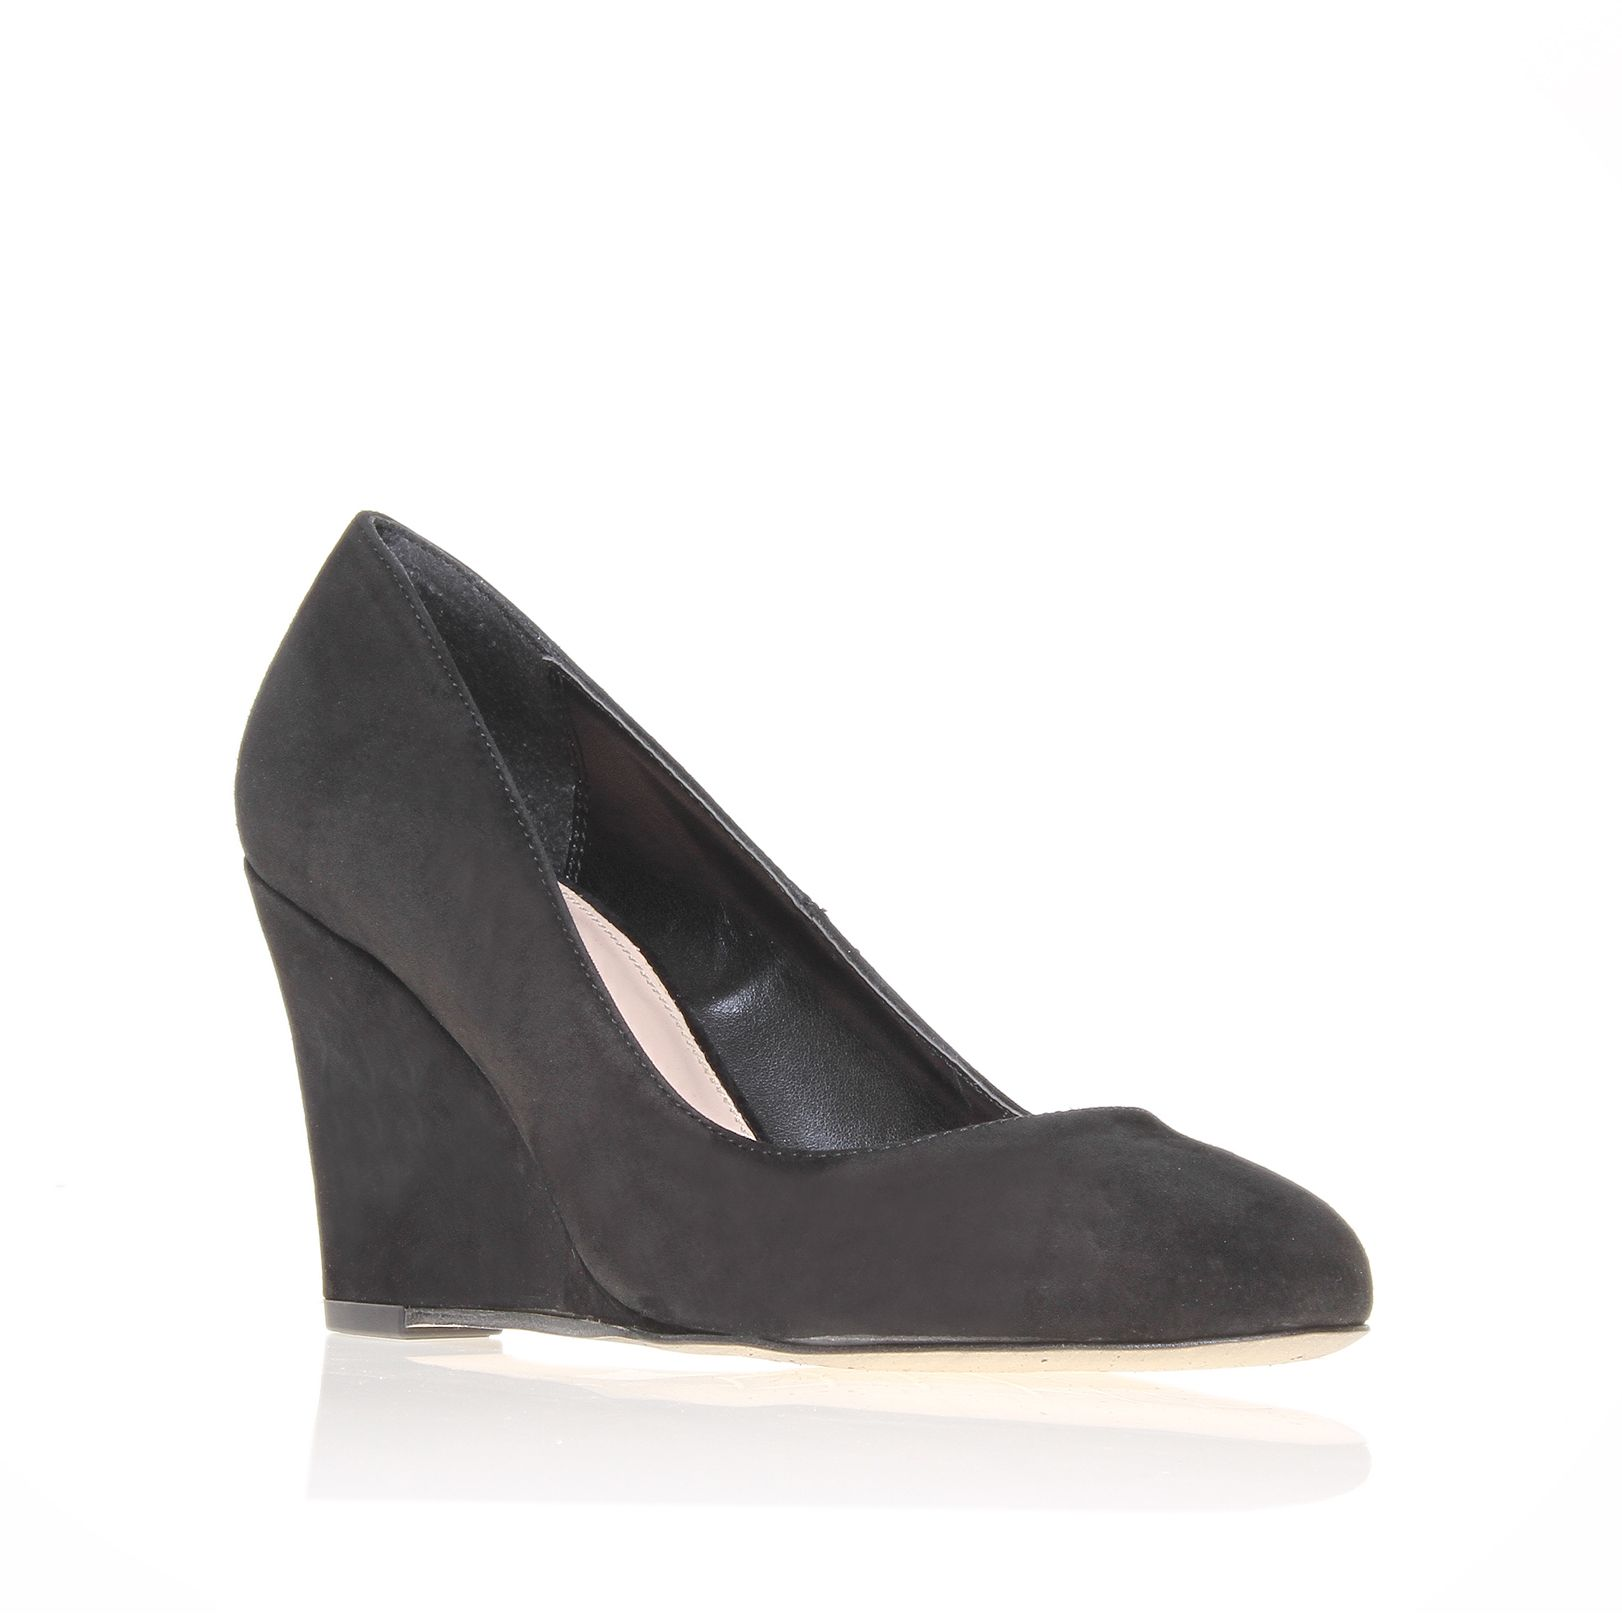 carvela kurt geiger accurate court shoes in gray black